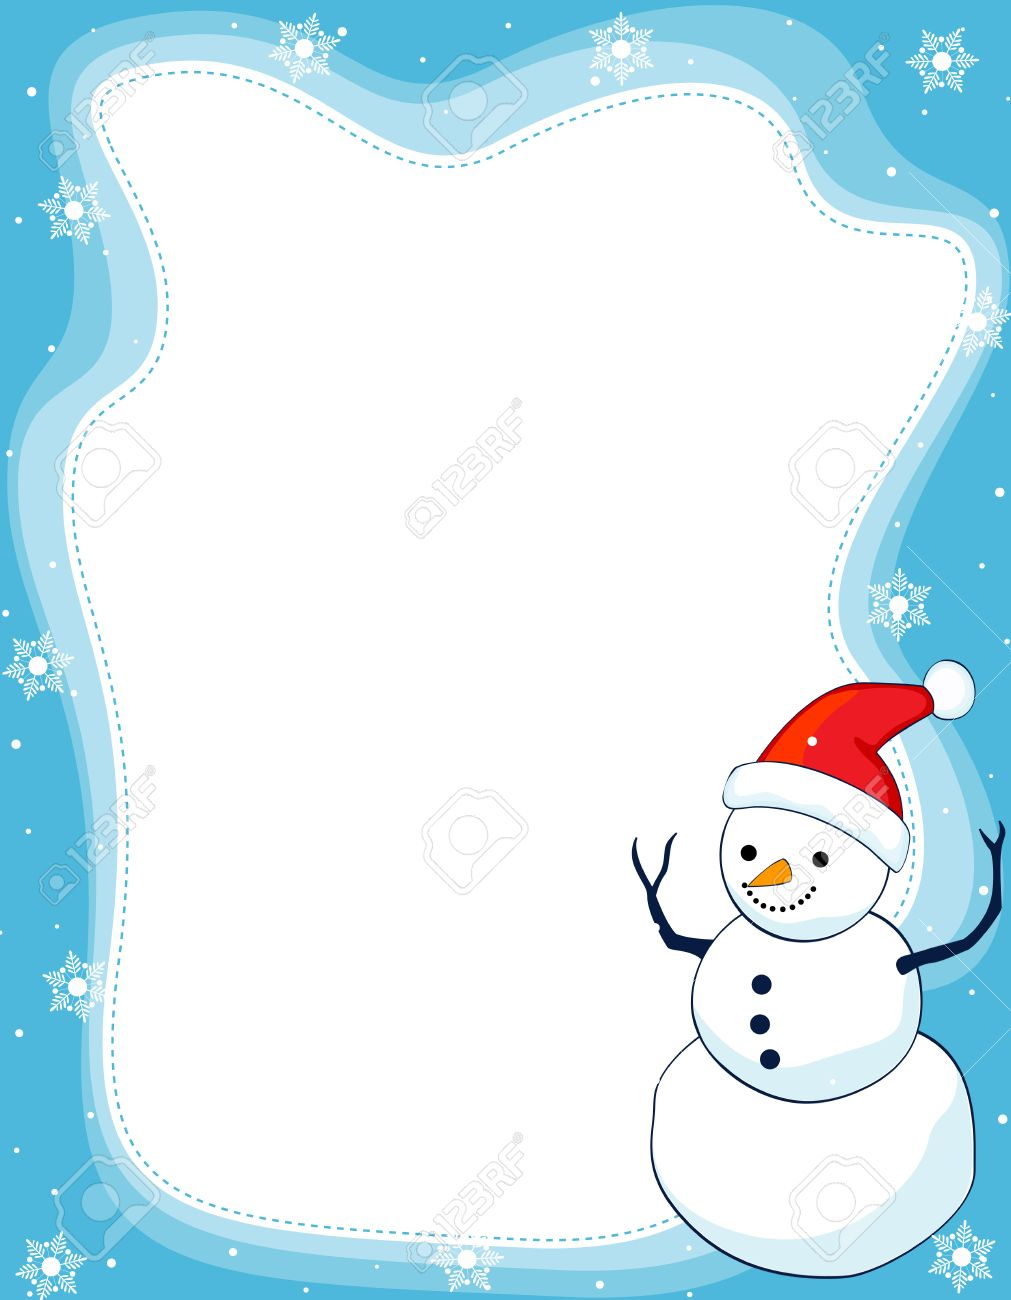 A border illustration featuring a smiling snowman with falling...